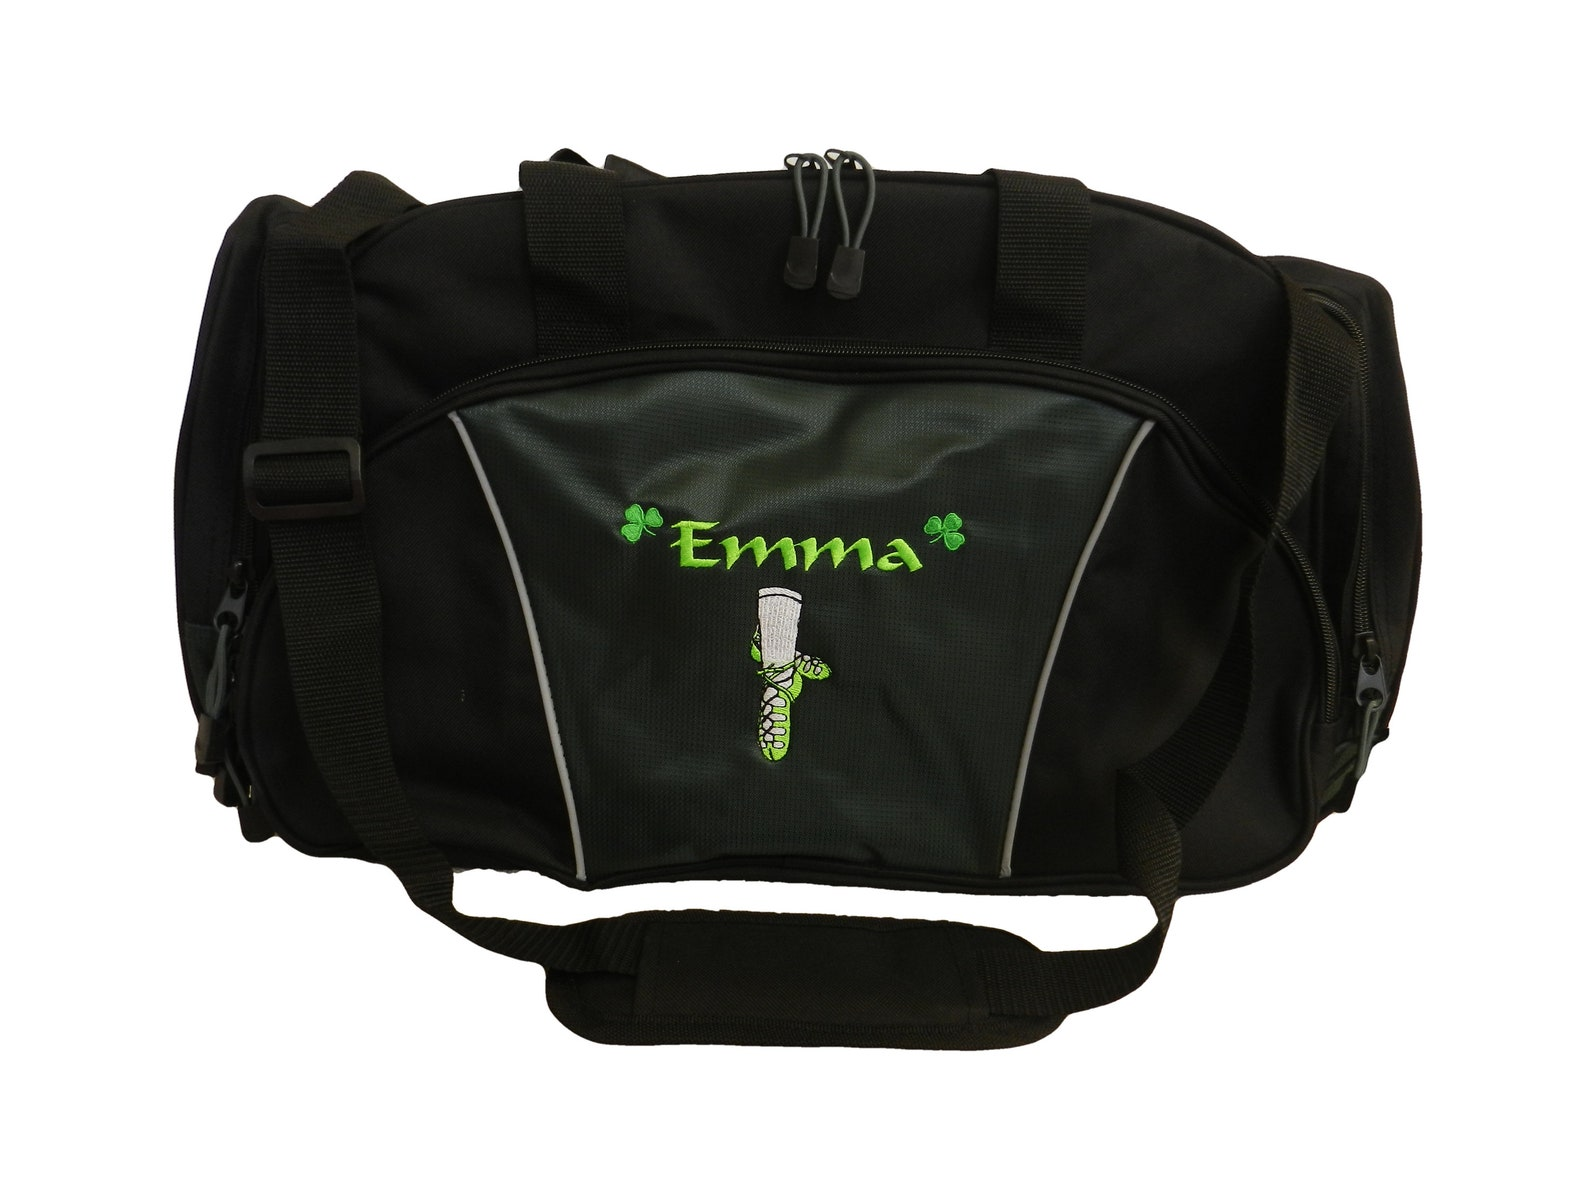 duffel bag personalized dancer dance irish dance jig ghillie shoes celtic shamrock ballet girl monogrammed duffle travel